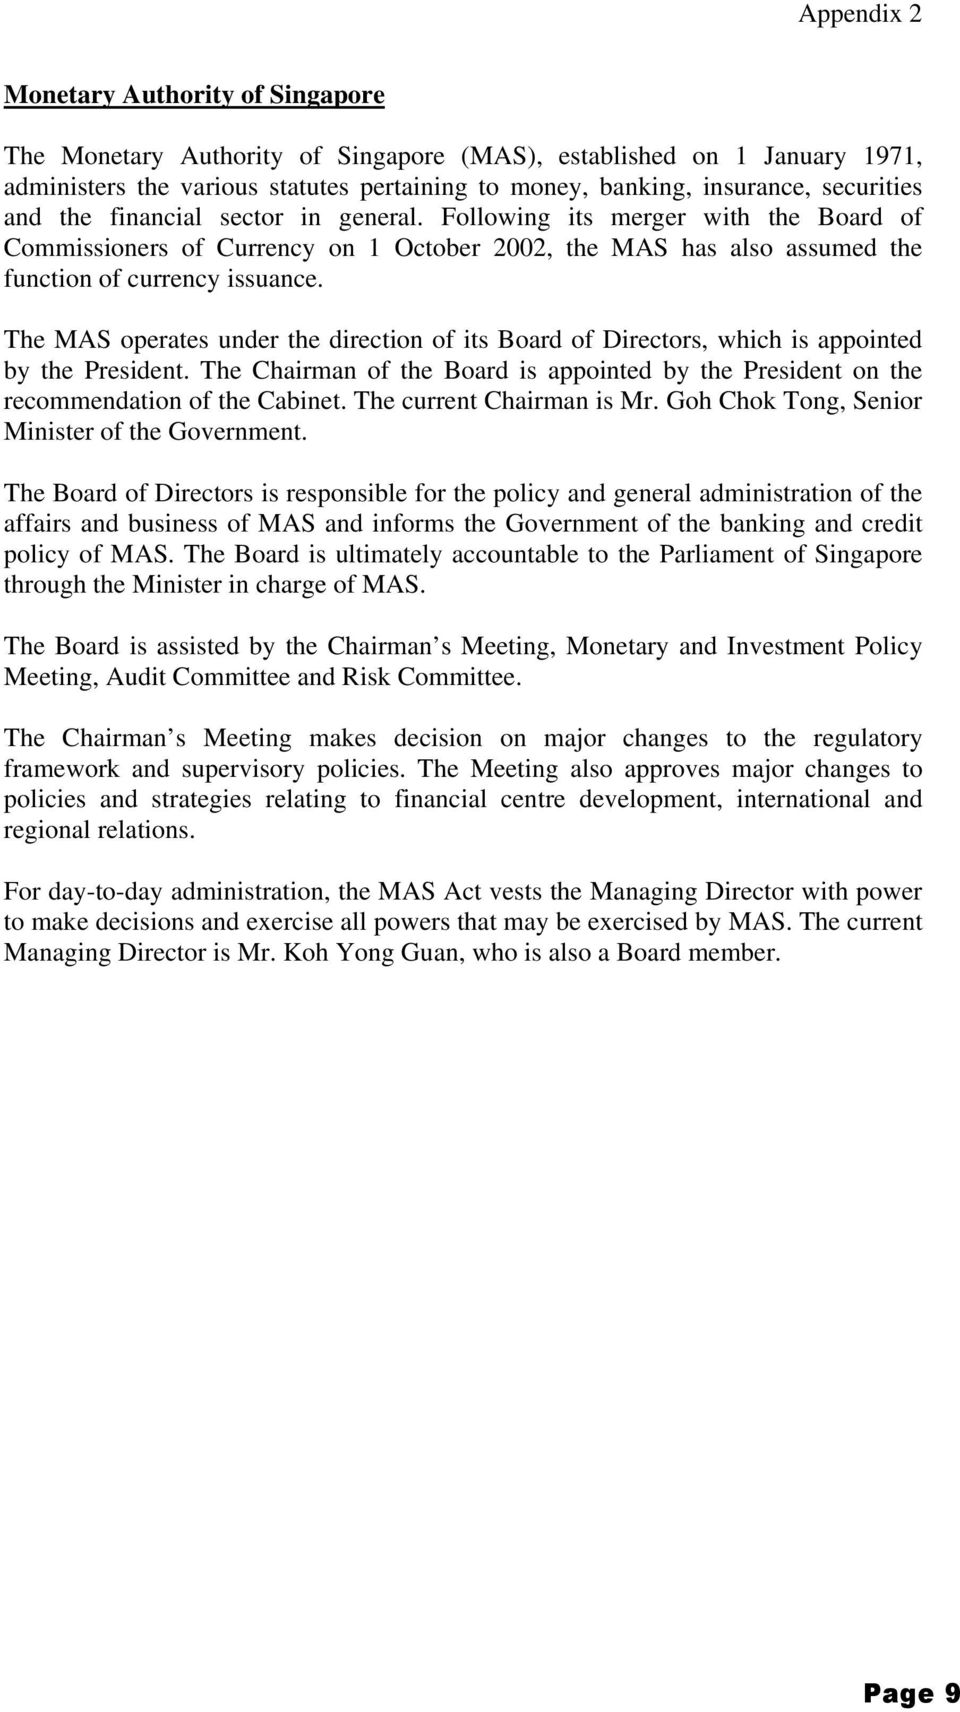 The MAS operates under the direction of its Board of Directors, which is appointed by the President. The Chairman of the Board is appointed by the President on the recommendation of the Cabinet.